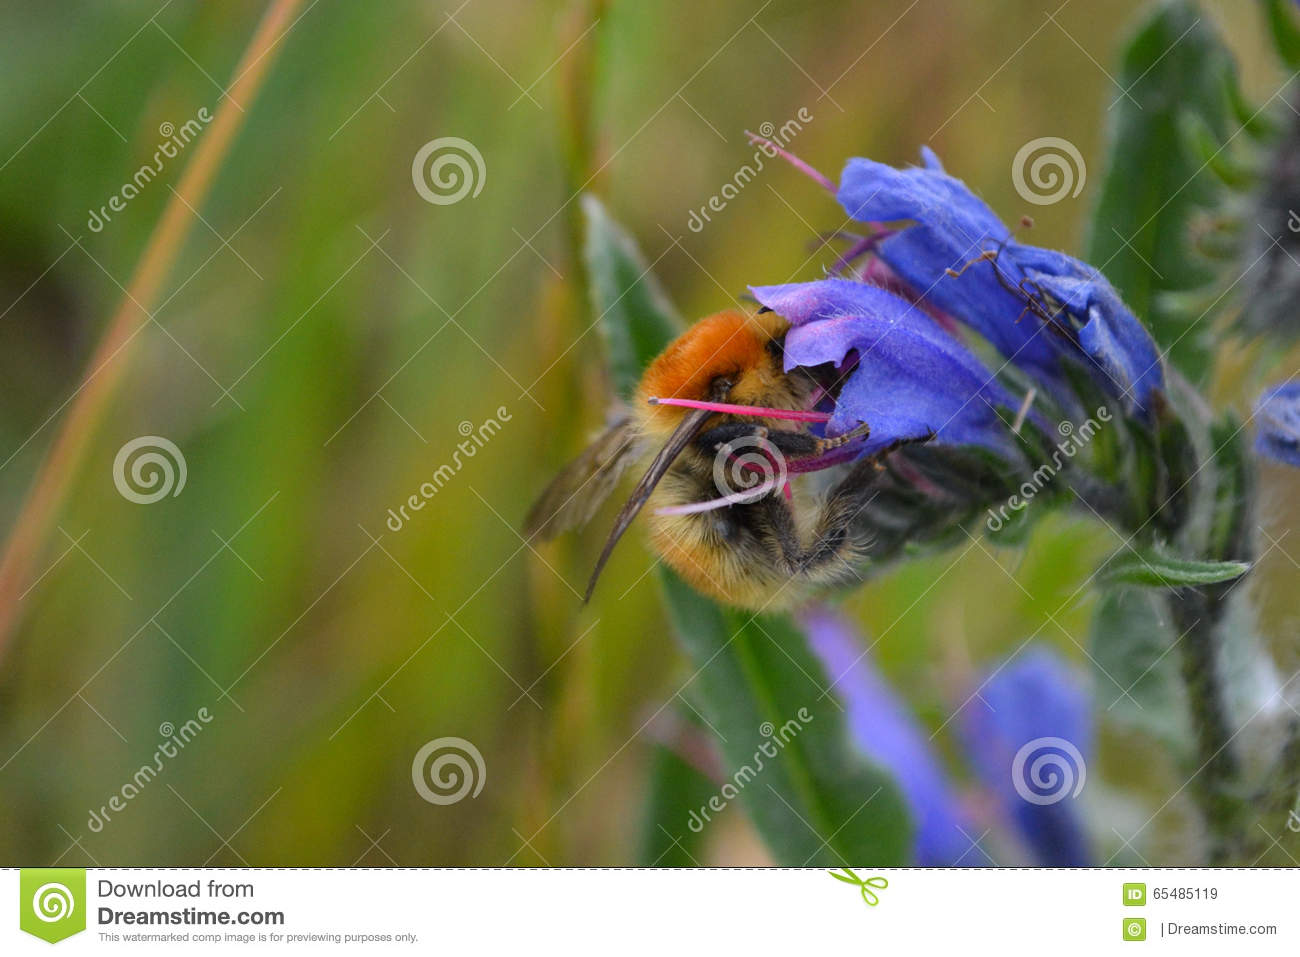 Brown Banded Carder Bee On A Viper's Bugloss Flower Stock